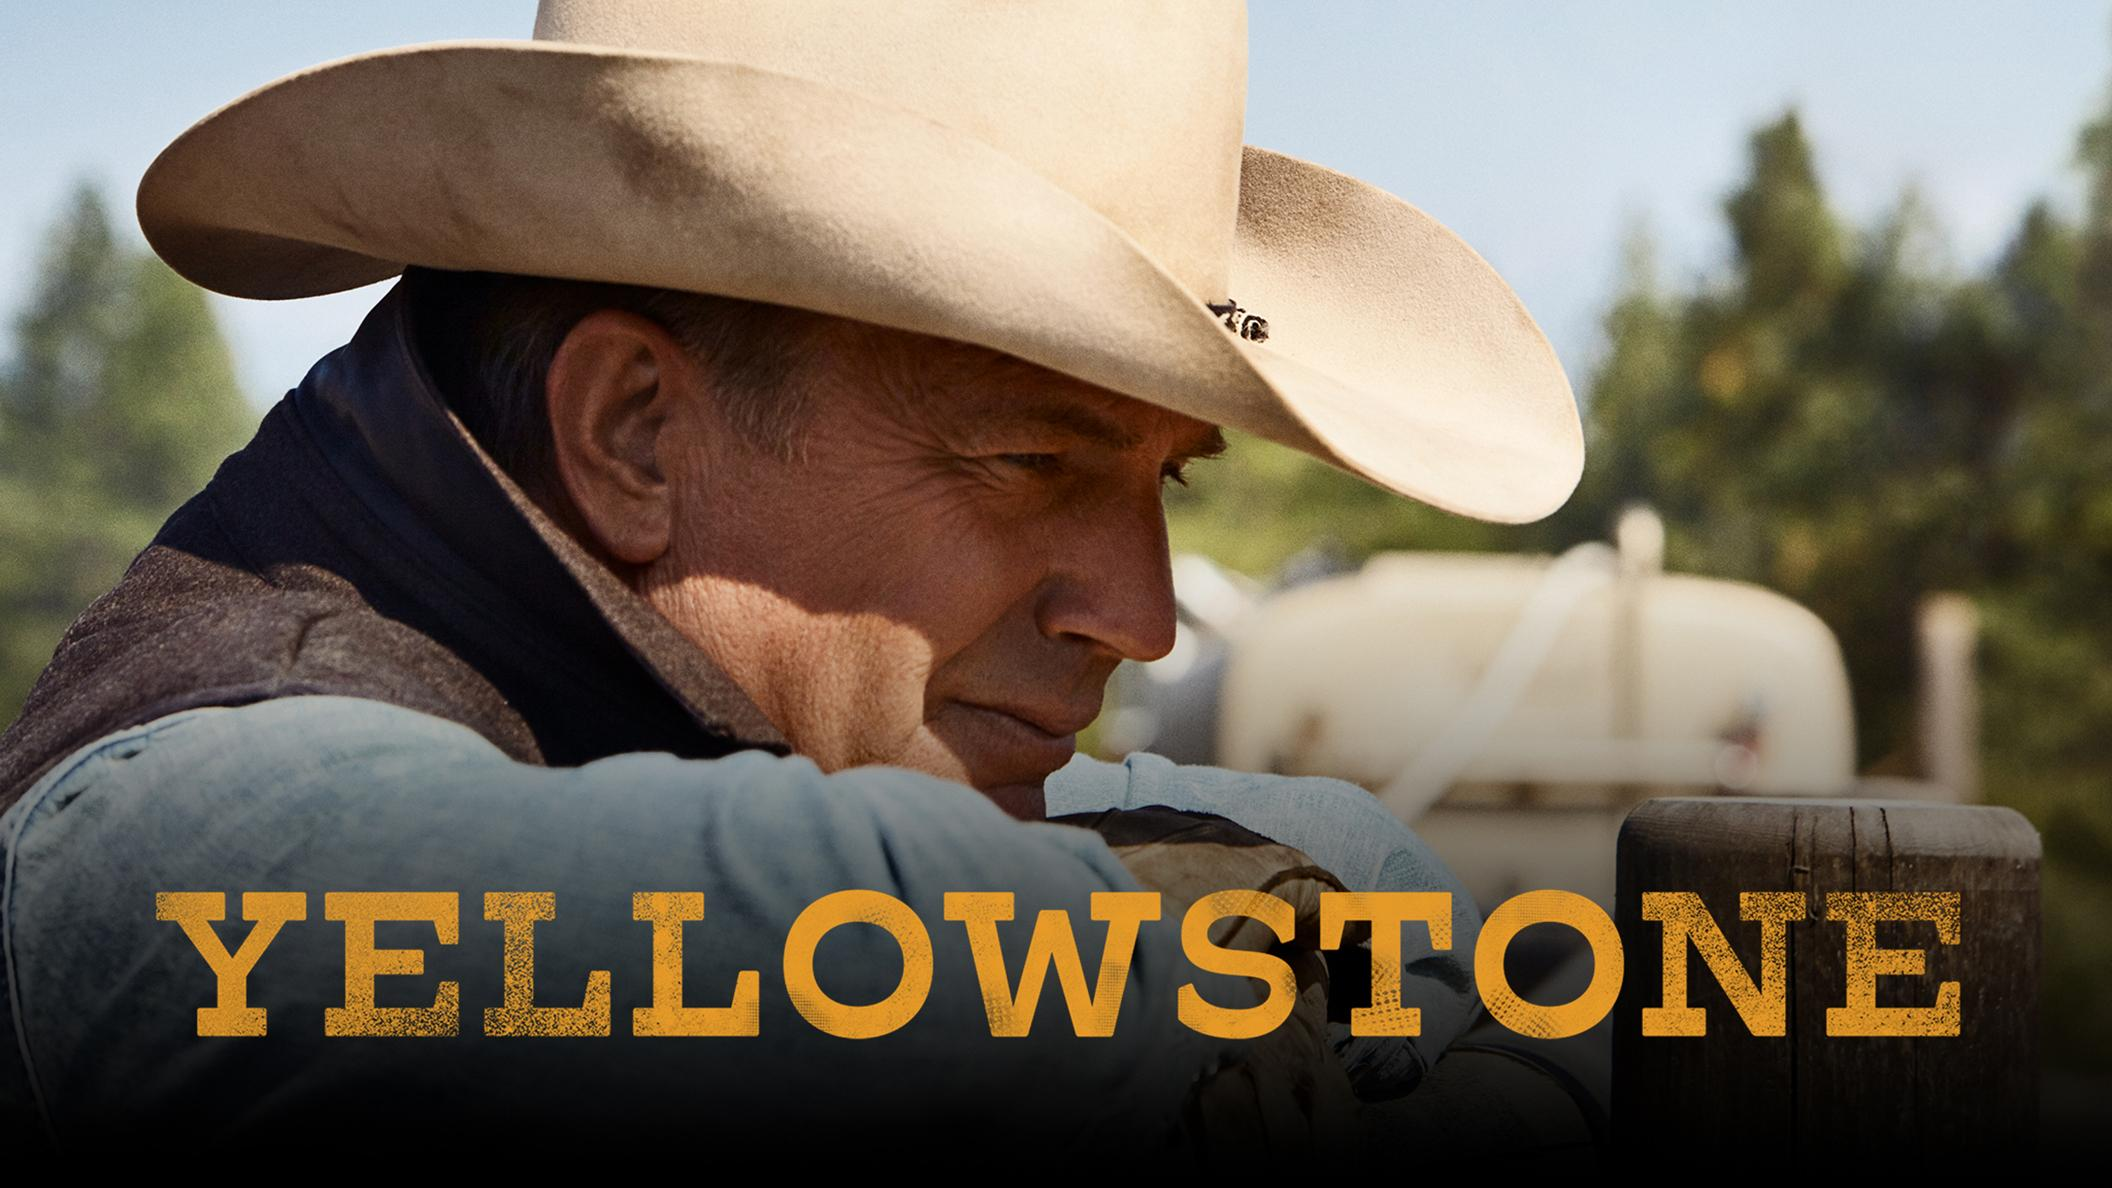 Stream And Watch Yellowstone Online | Sling TV